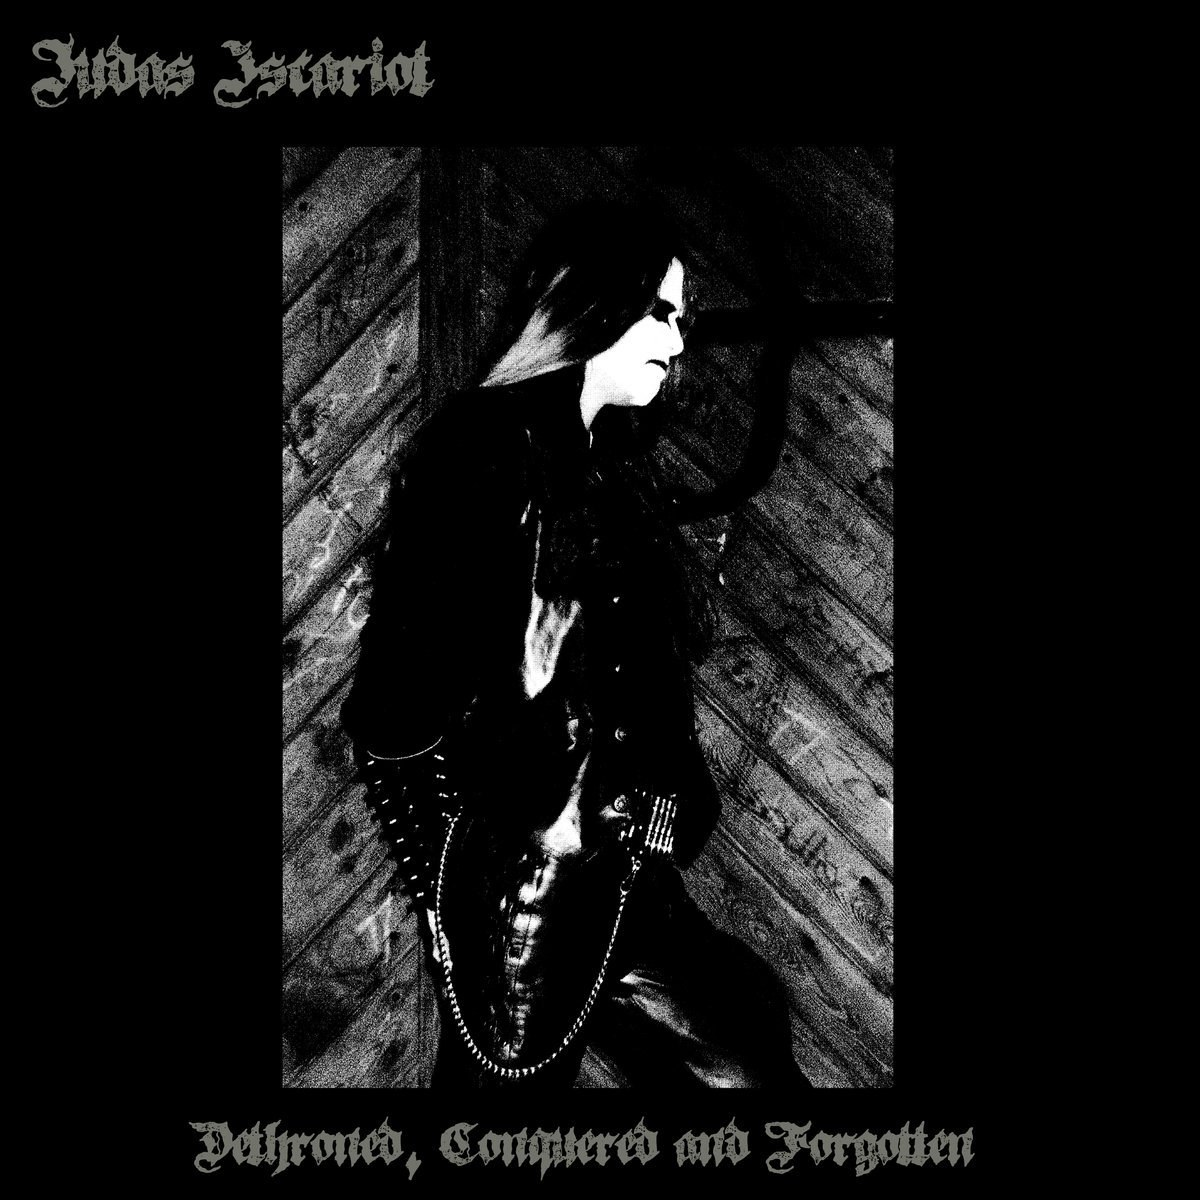 Review for Judas Iscariot - Dethroned, Conquered and Forgotten